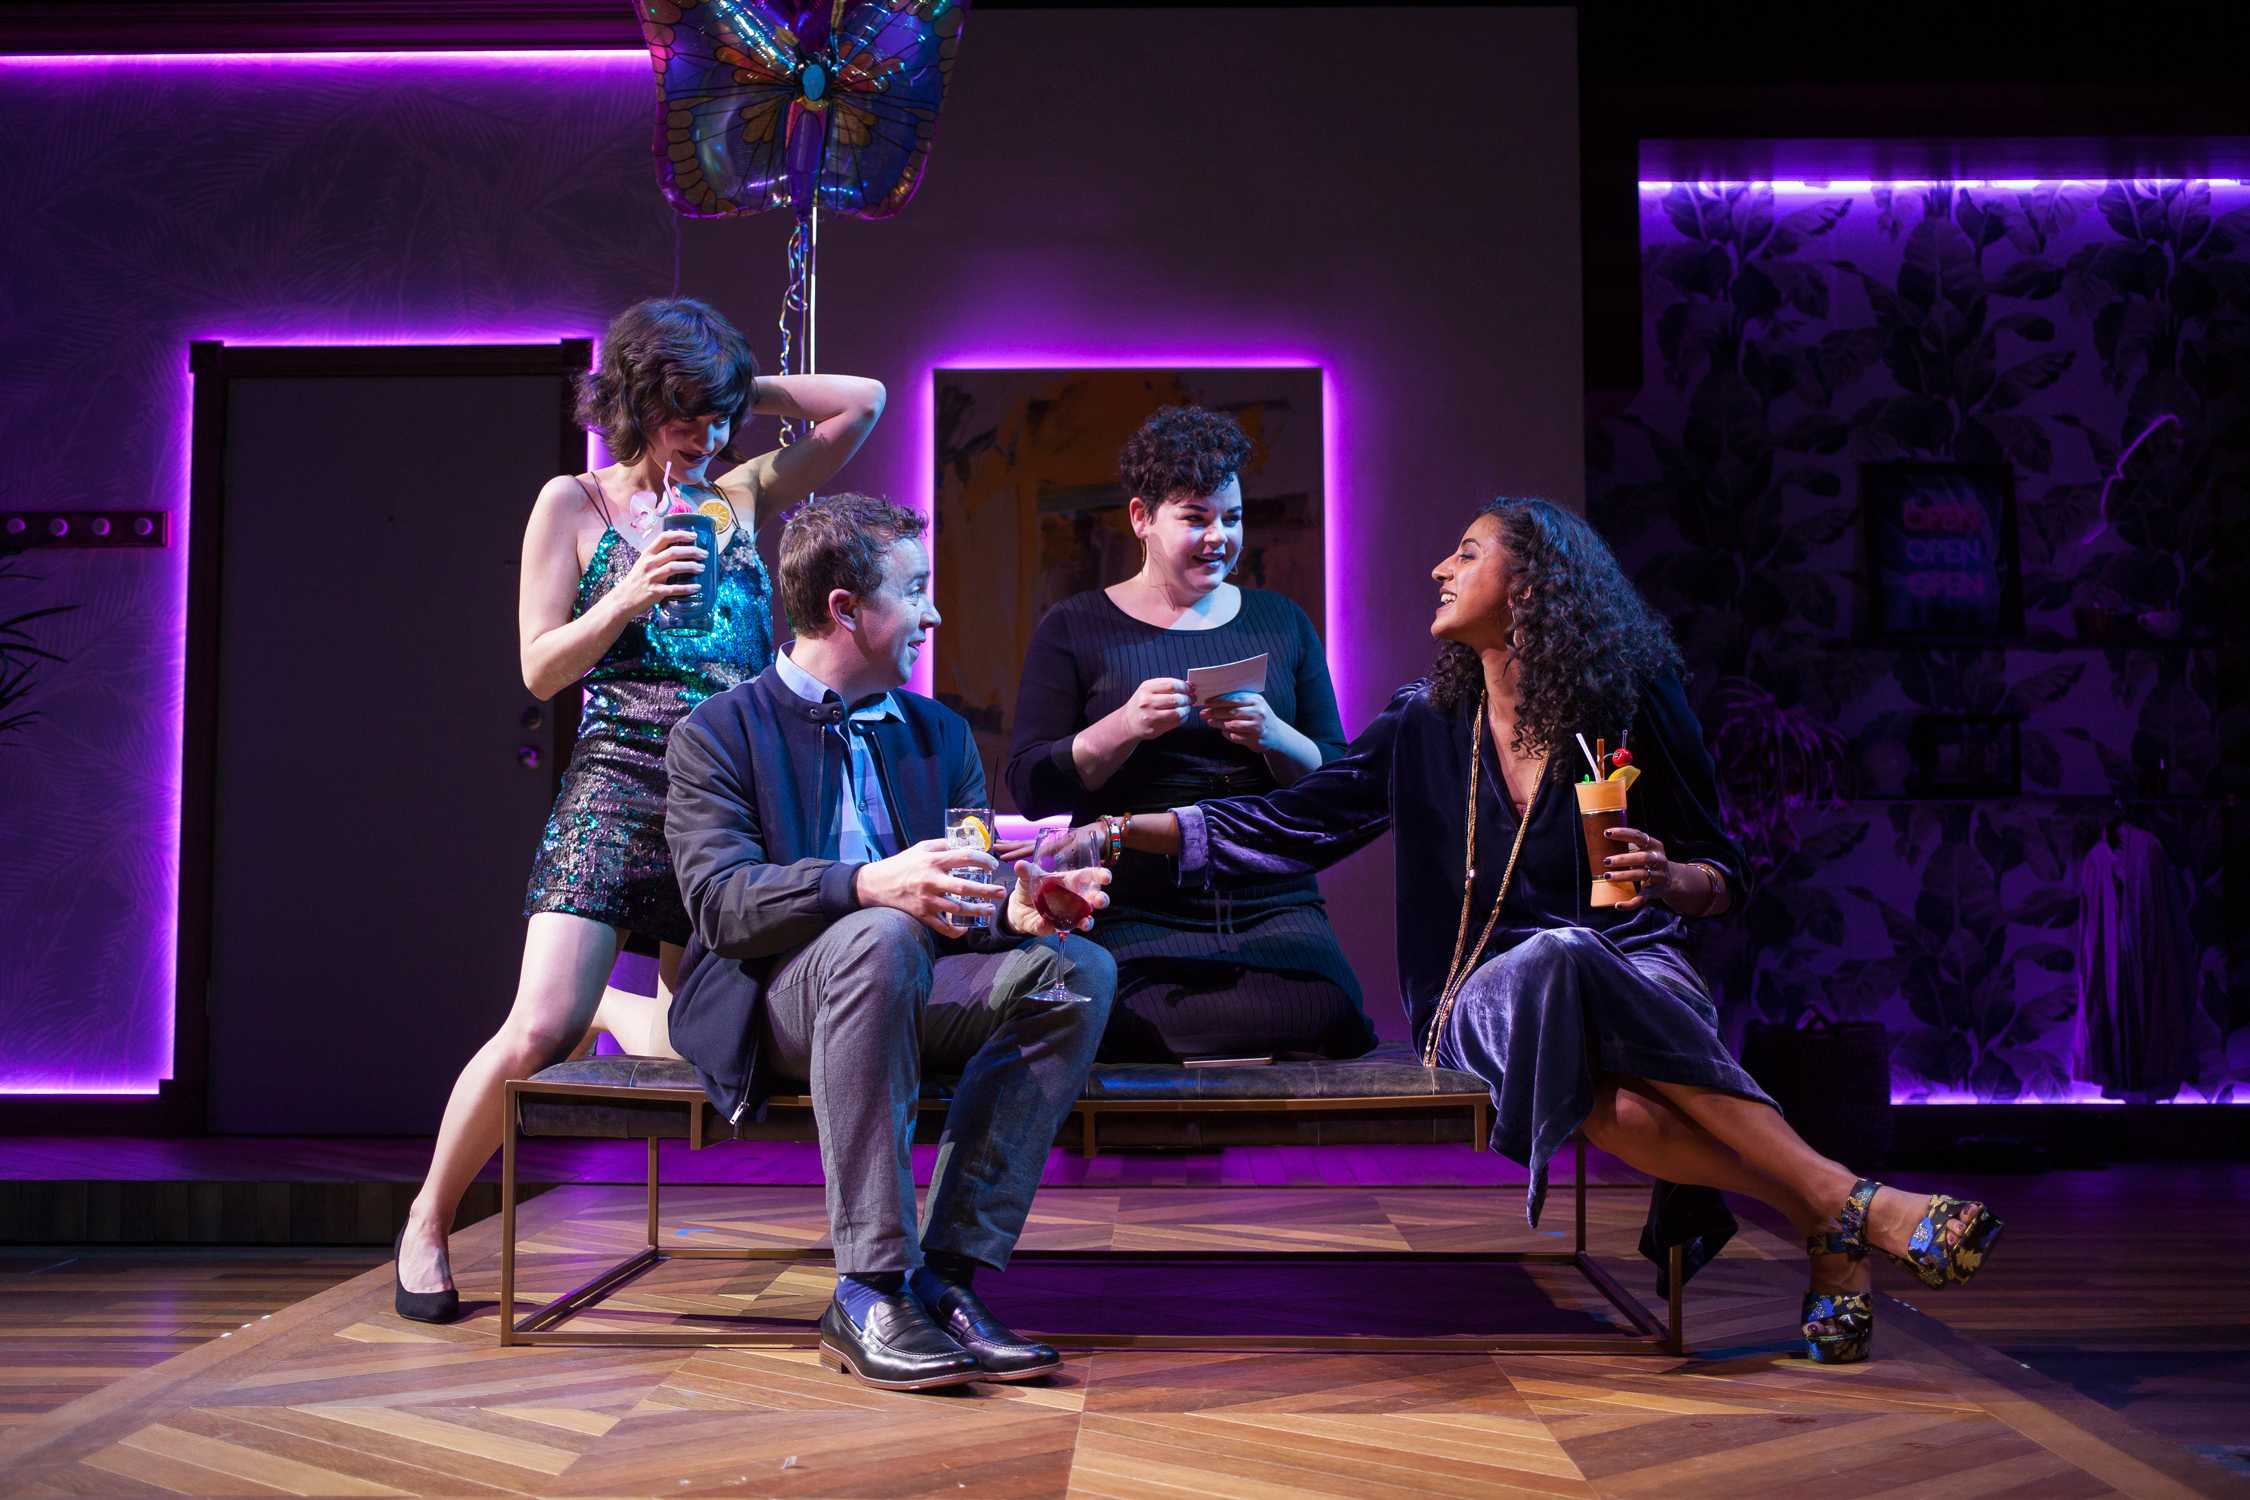 Keilly McQuail, Will Von Vogt, Melanie Field and Vella Lovell star in the Geffen Playhouse's production of Significant Other. Photo by Chris Whitaker.